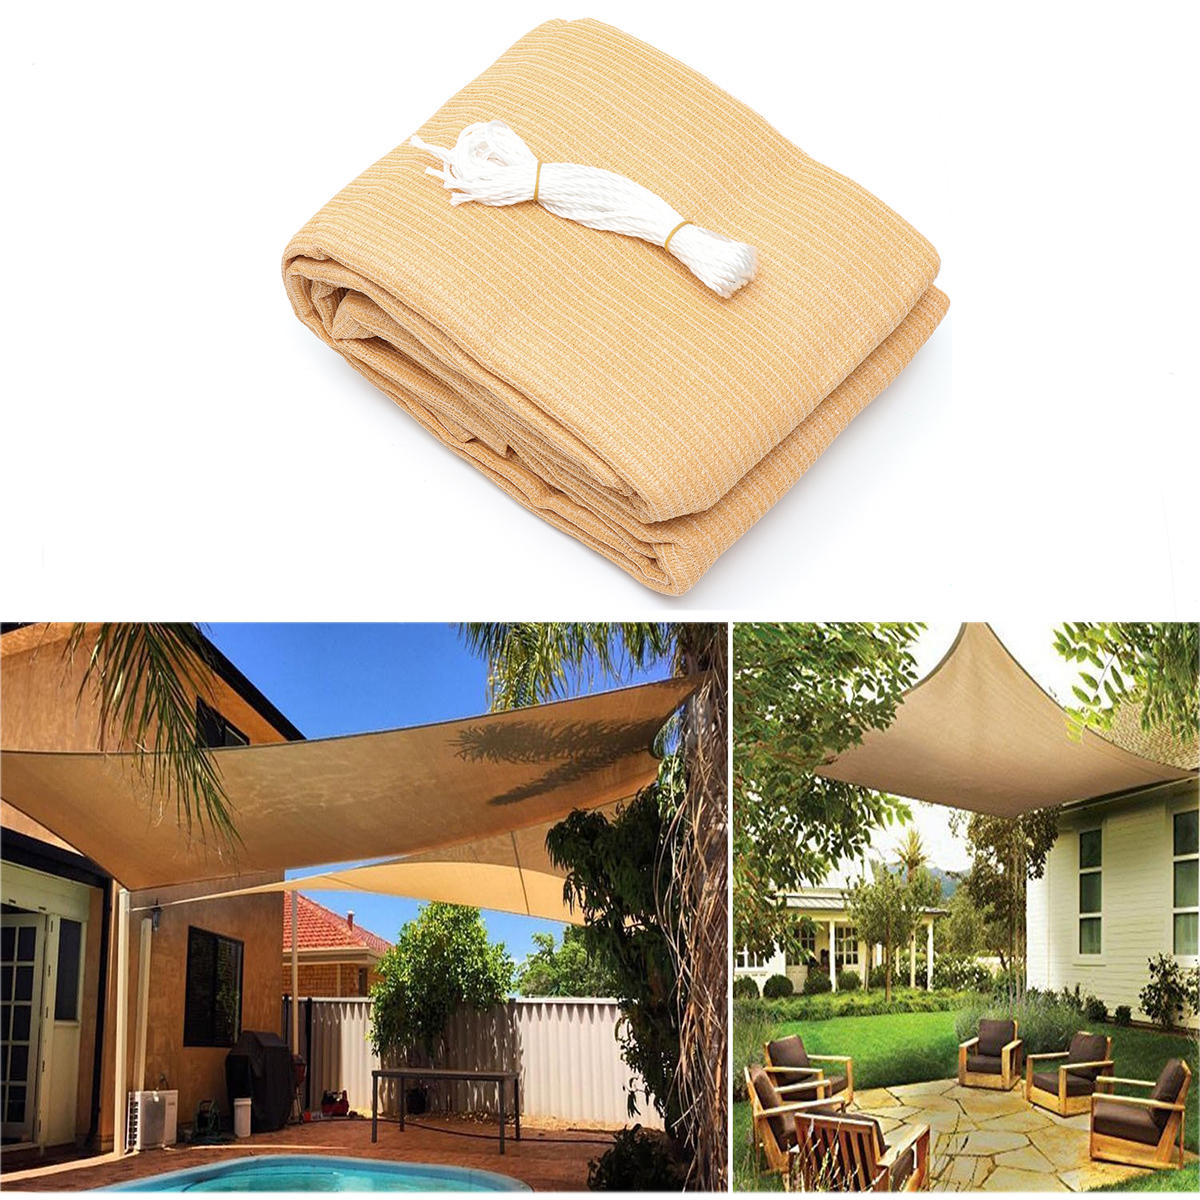 3x3M/4M 280gsm HDPE UV Sun Shade Sail Cloth Canopy Outdoor Patio Square  Rectangle Awning